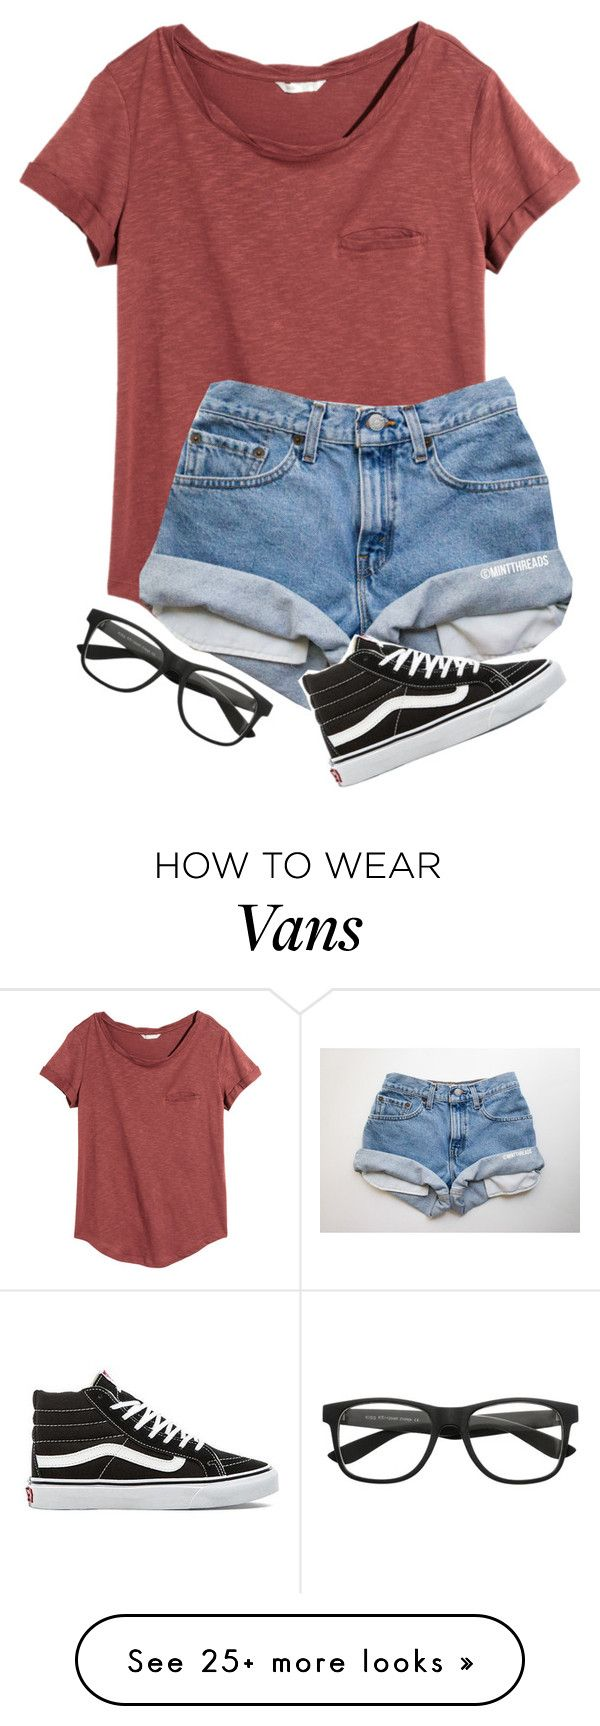 """""""I got new glasses today! They actually kinda look like the ones in this set """" by one-of-those-nights on Polyvore featuring H&M and Vans"""